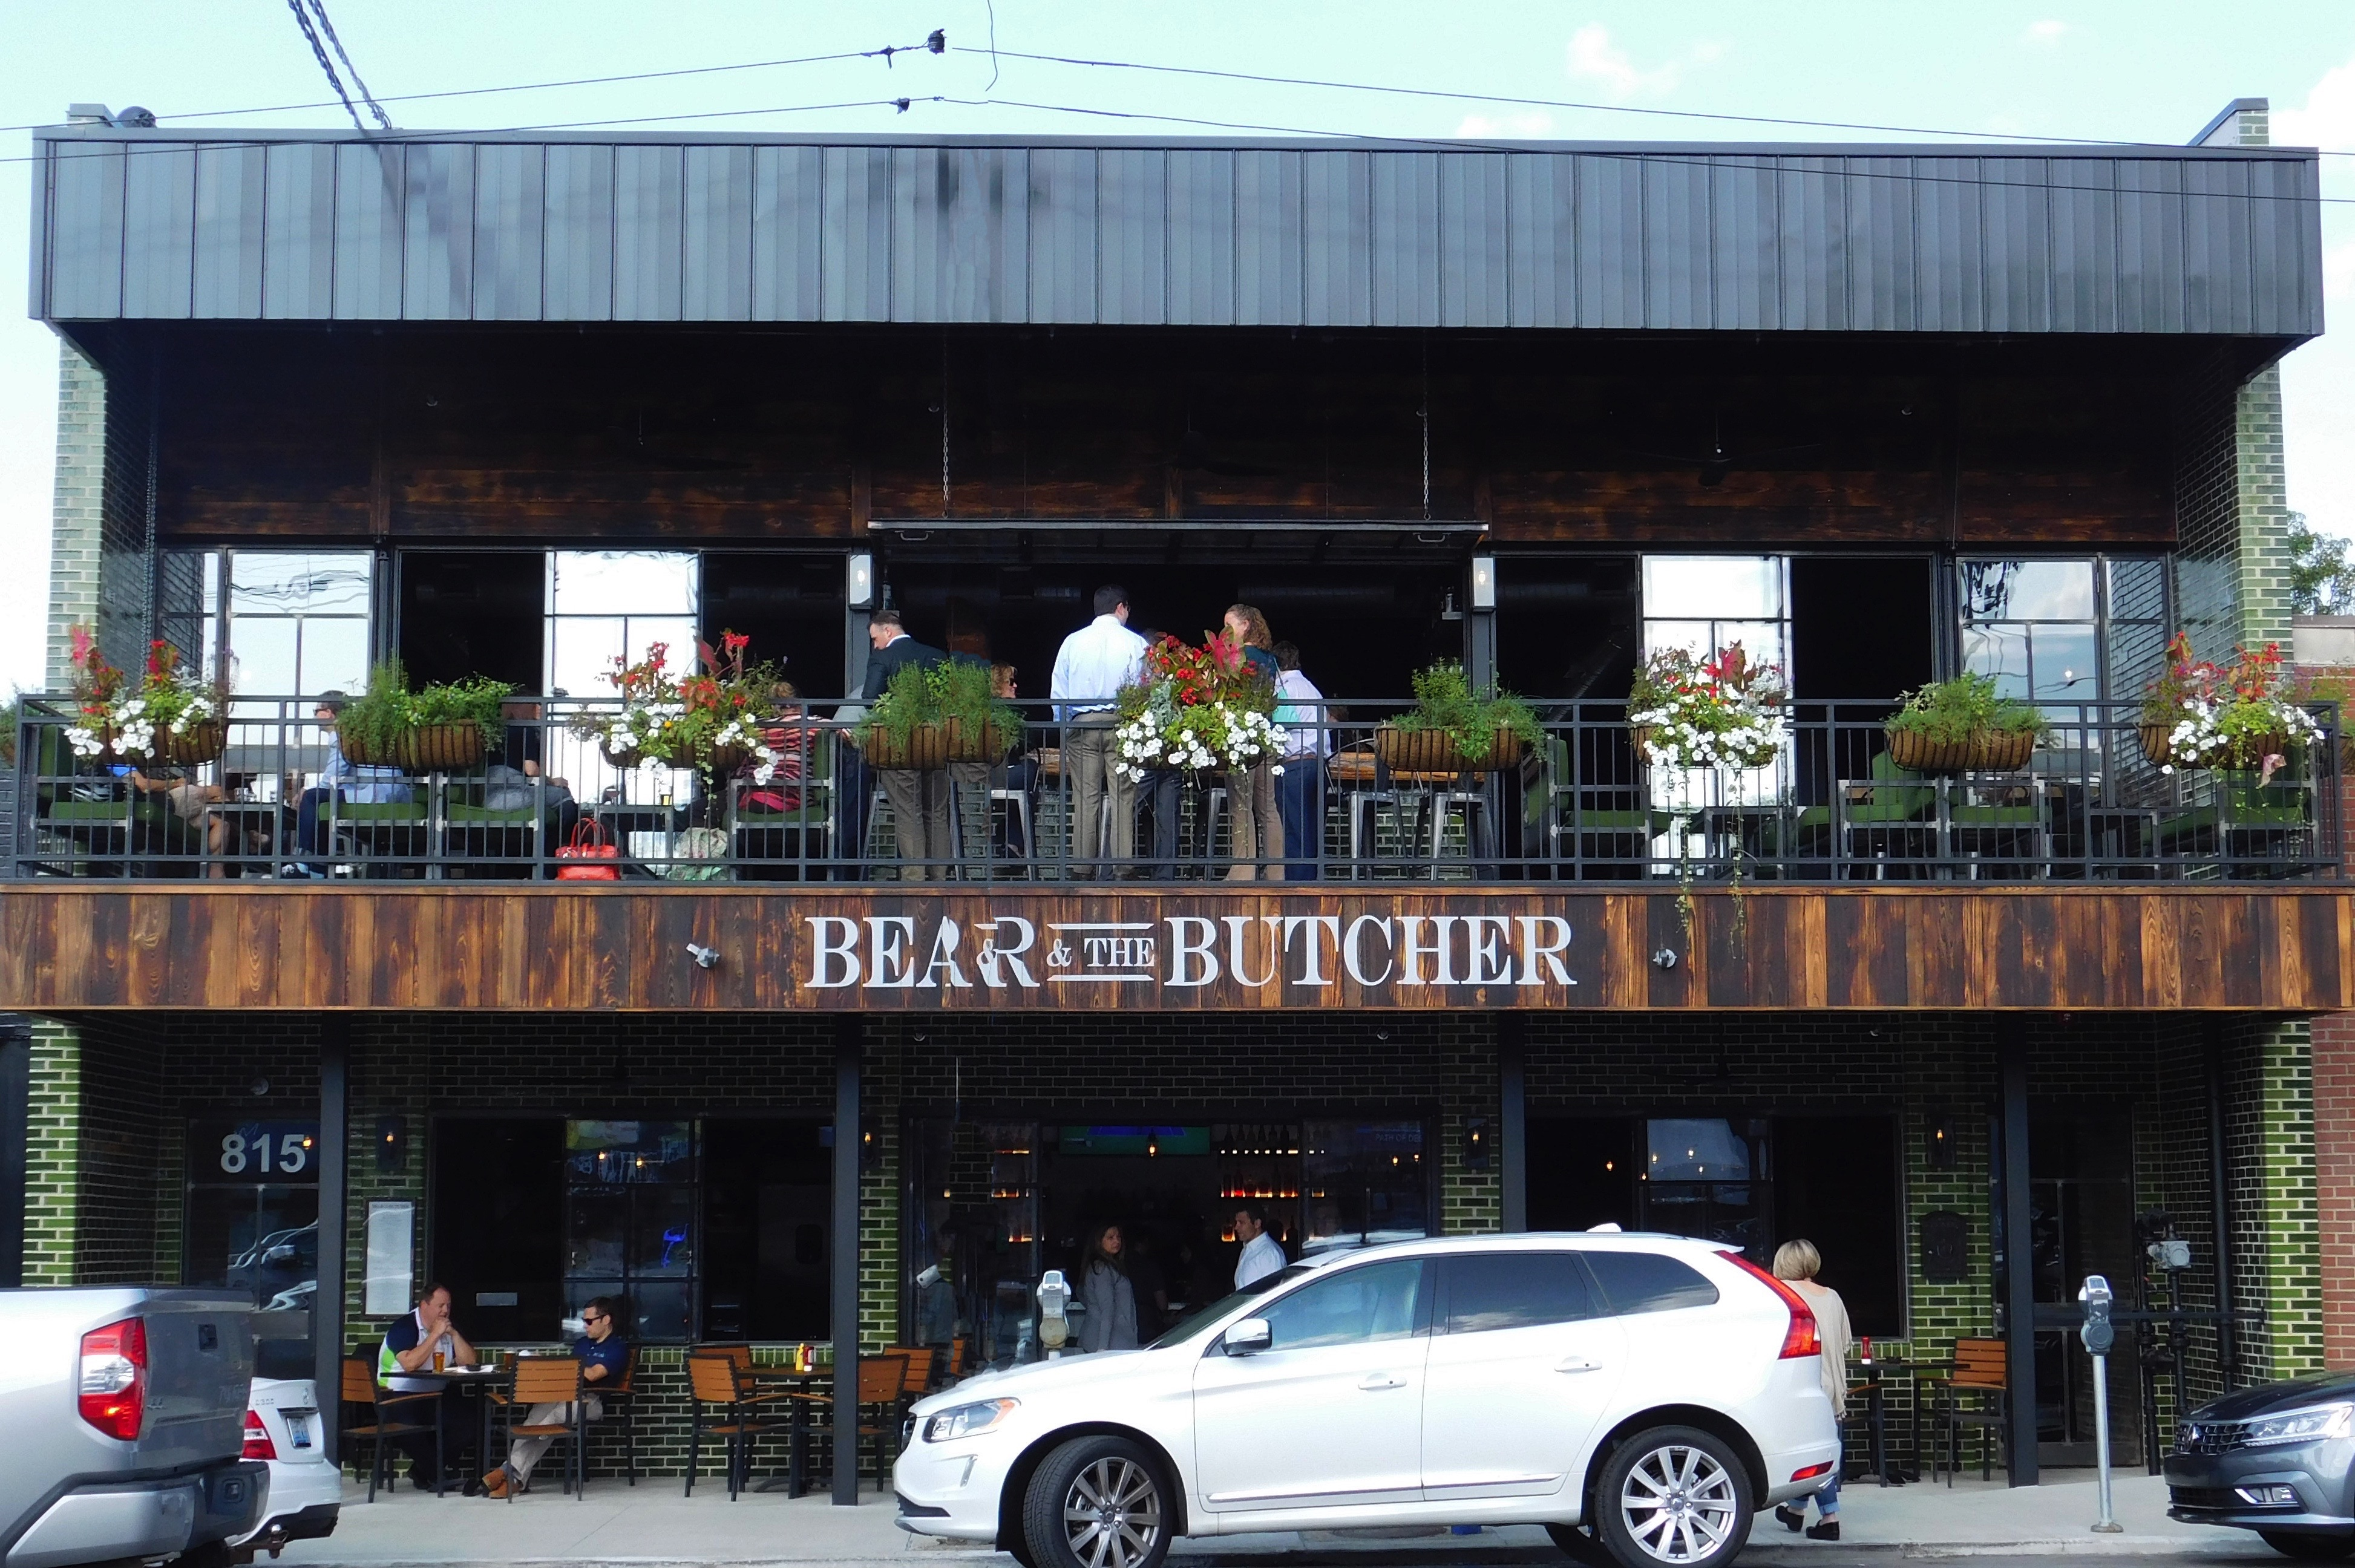 Butcher & Bear